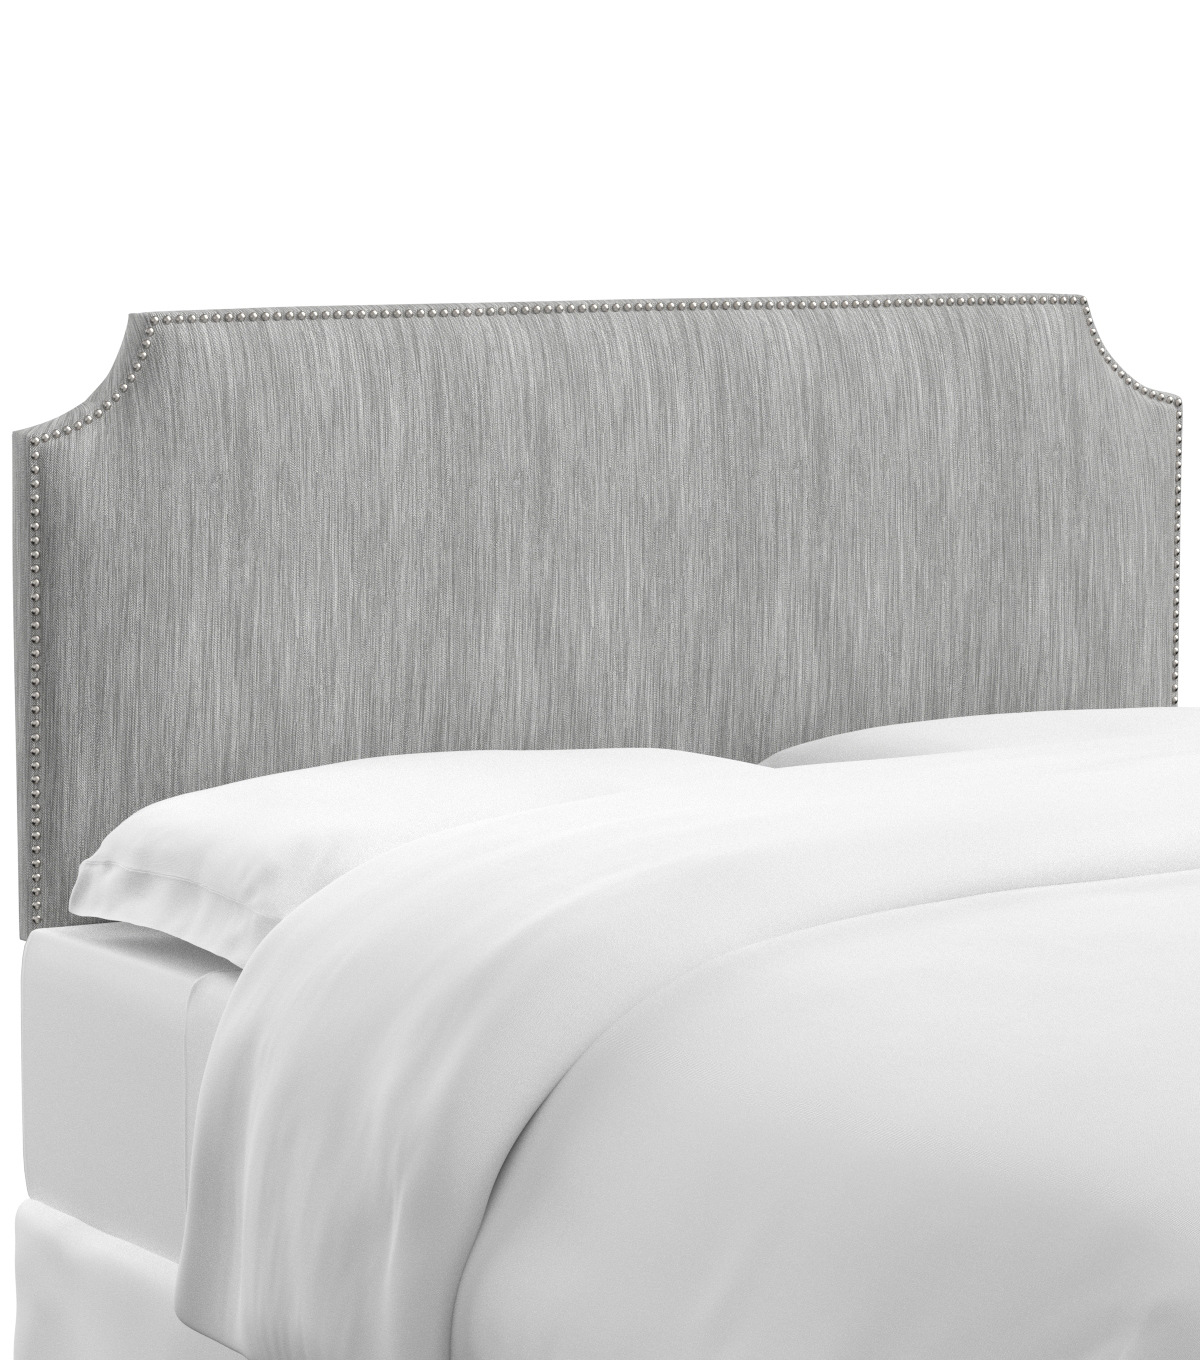 Skyline Furniture Notched Nail Button Headboard-California King